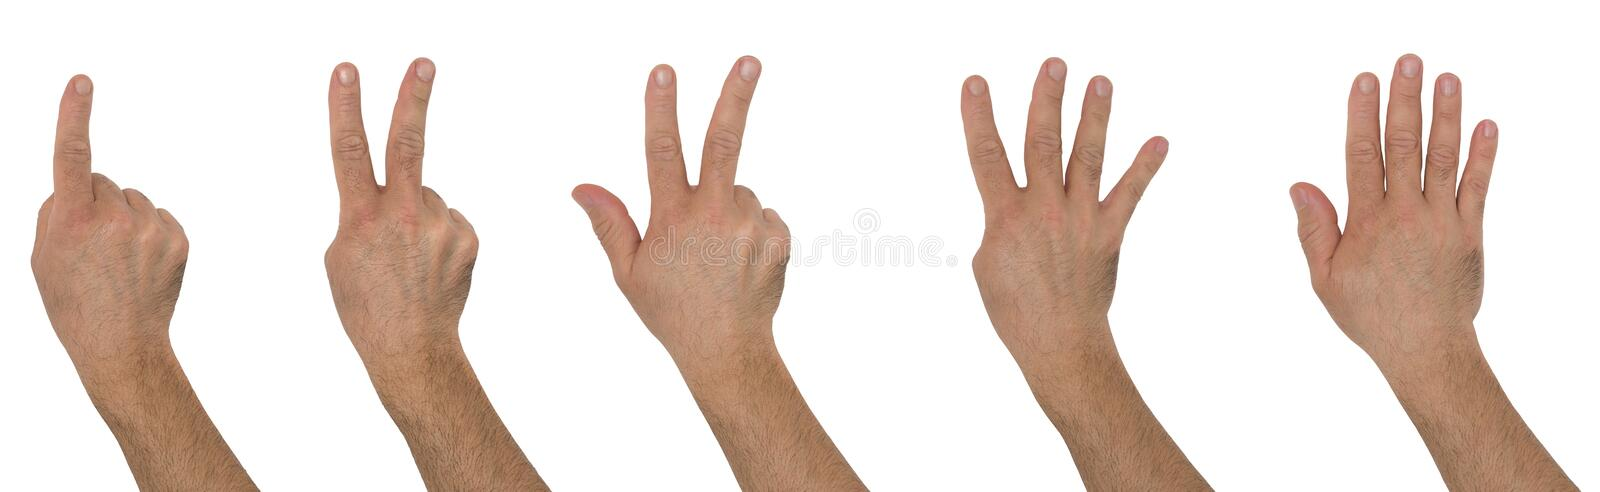 Hands numbers stock image